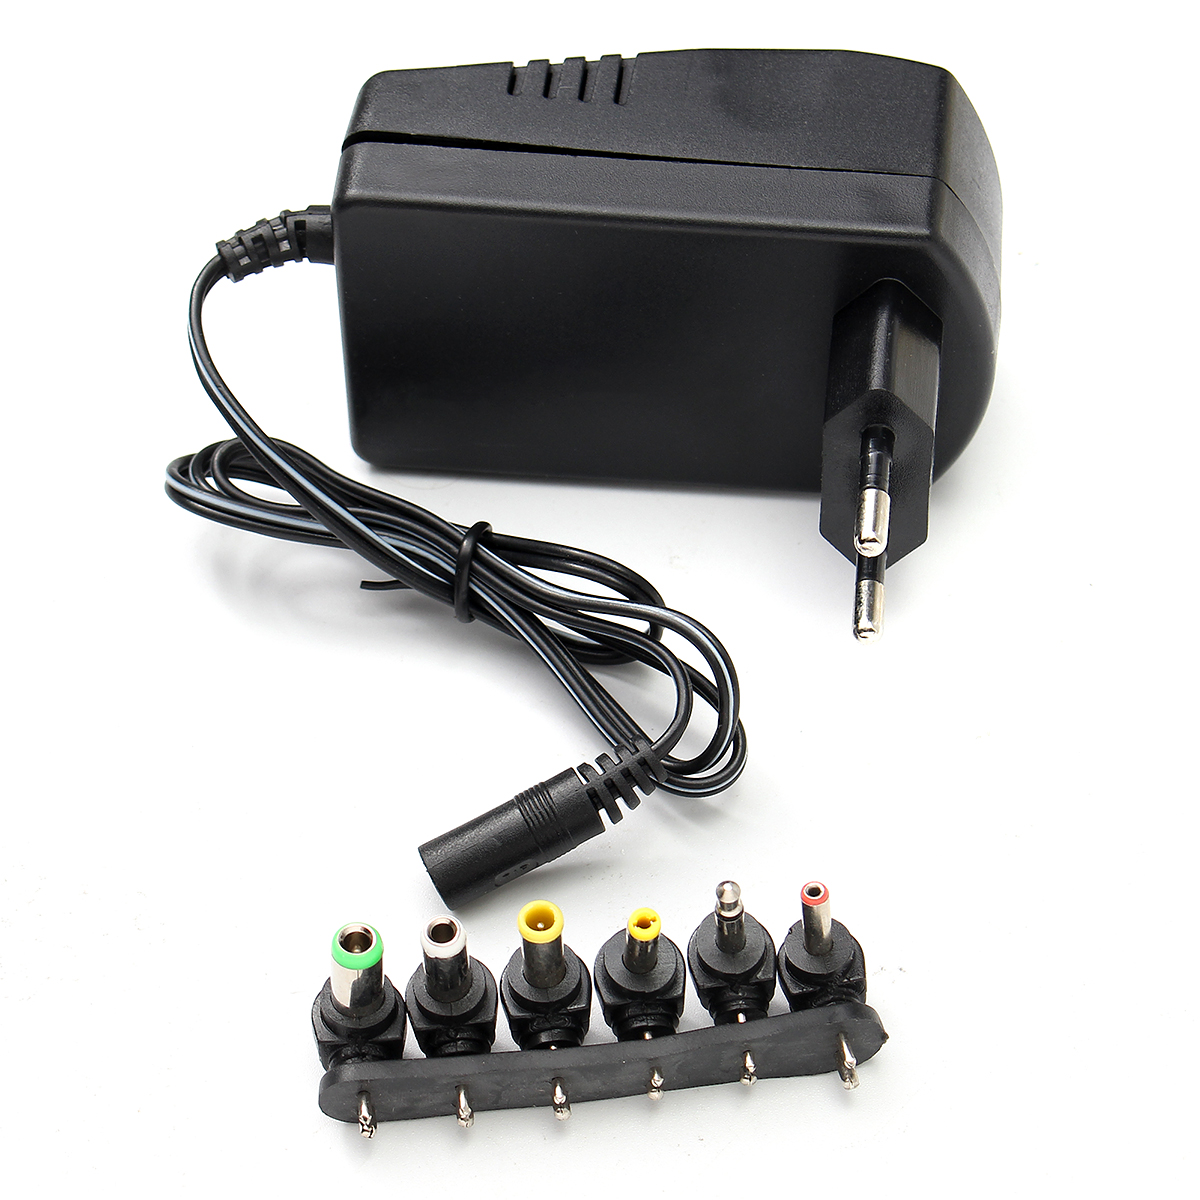 EU/US Plug 6 Voltage 3v 4.5v 5v 6v 9v <font><b>12v</b></font> <font><b>DC</b></font> Adaptor Adjustable Power <font><b>Adapter</b></font> Universal Charger Power Supply Converter Cable image